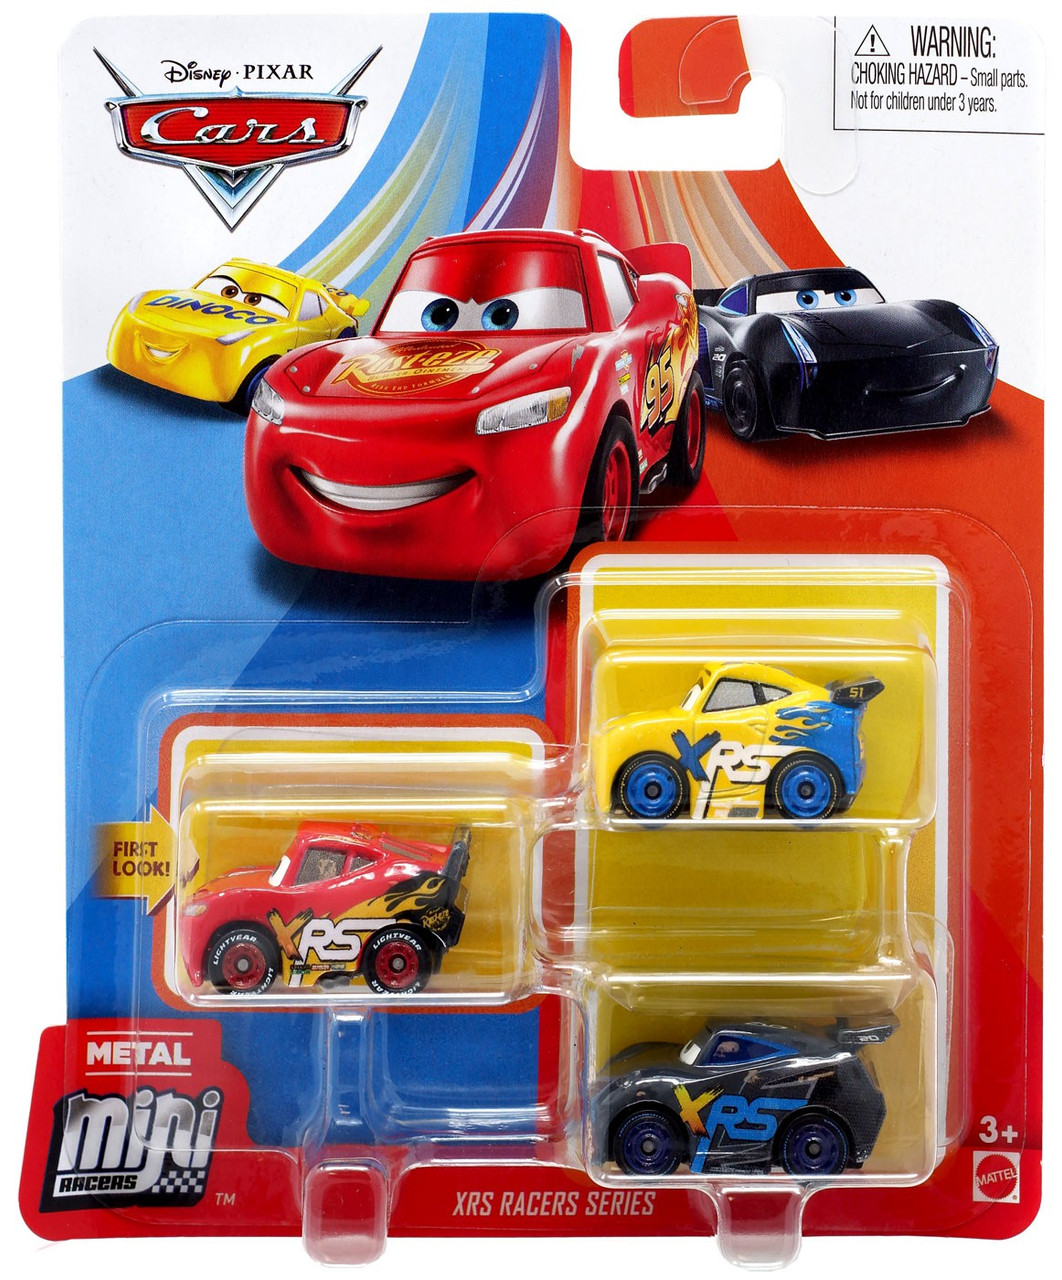 Disney Pixar Cars Die Cast Metal Mini Racers Xrs Racers Car 3 Pack